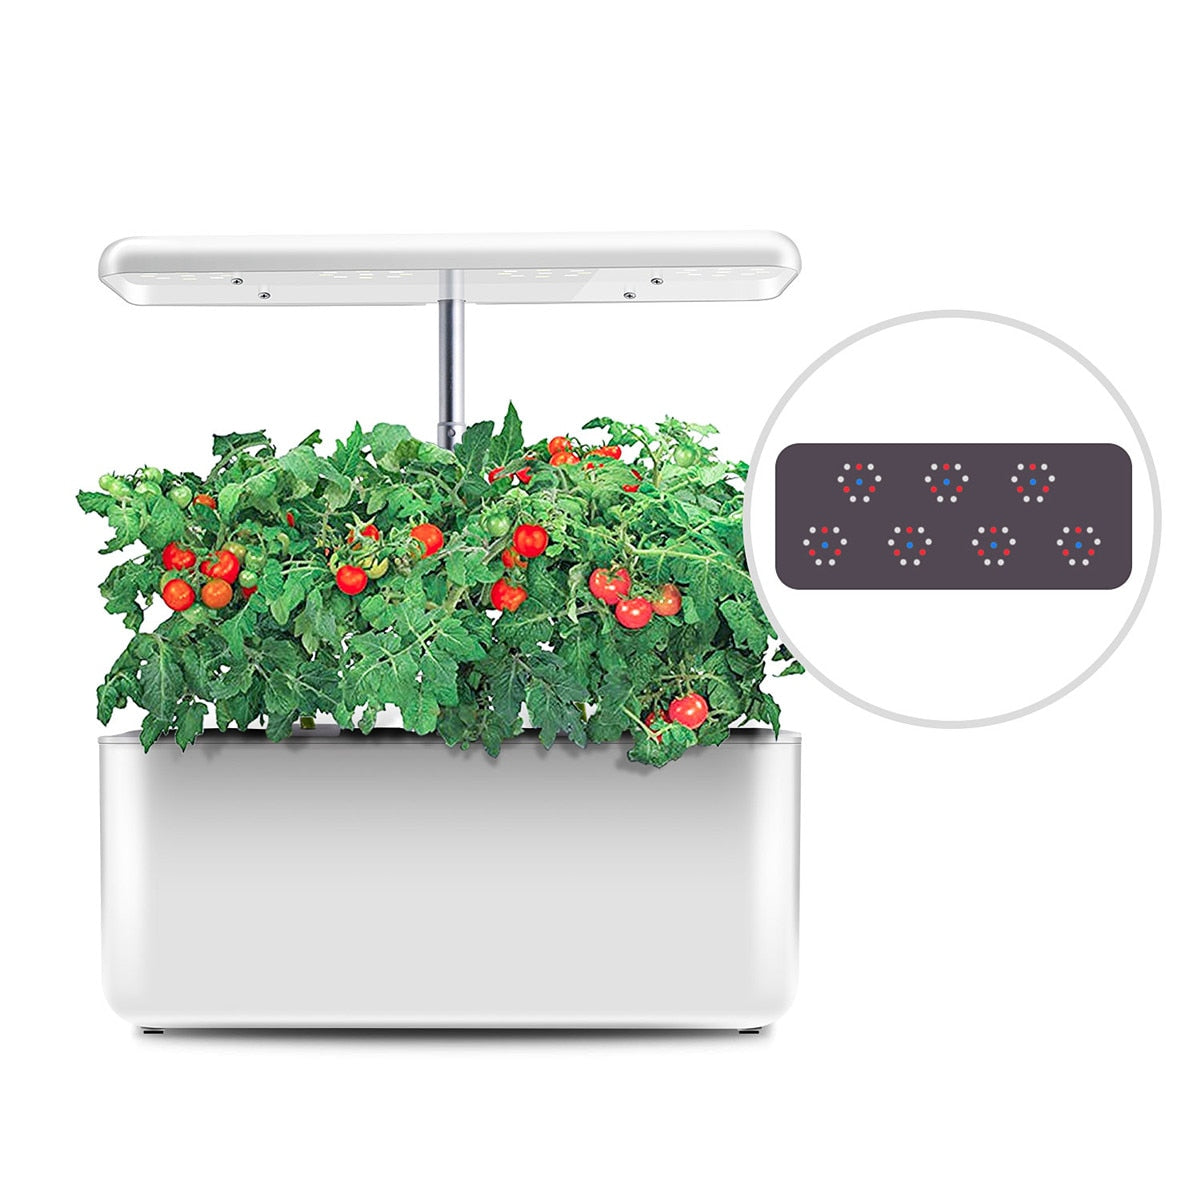 Our Signature All-In-One Hydroponics System